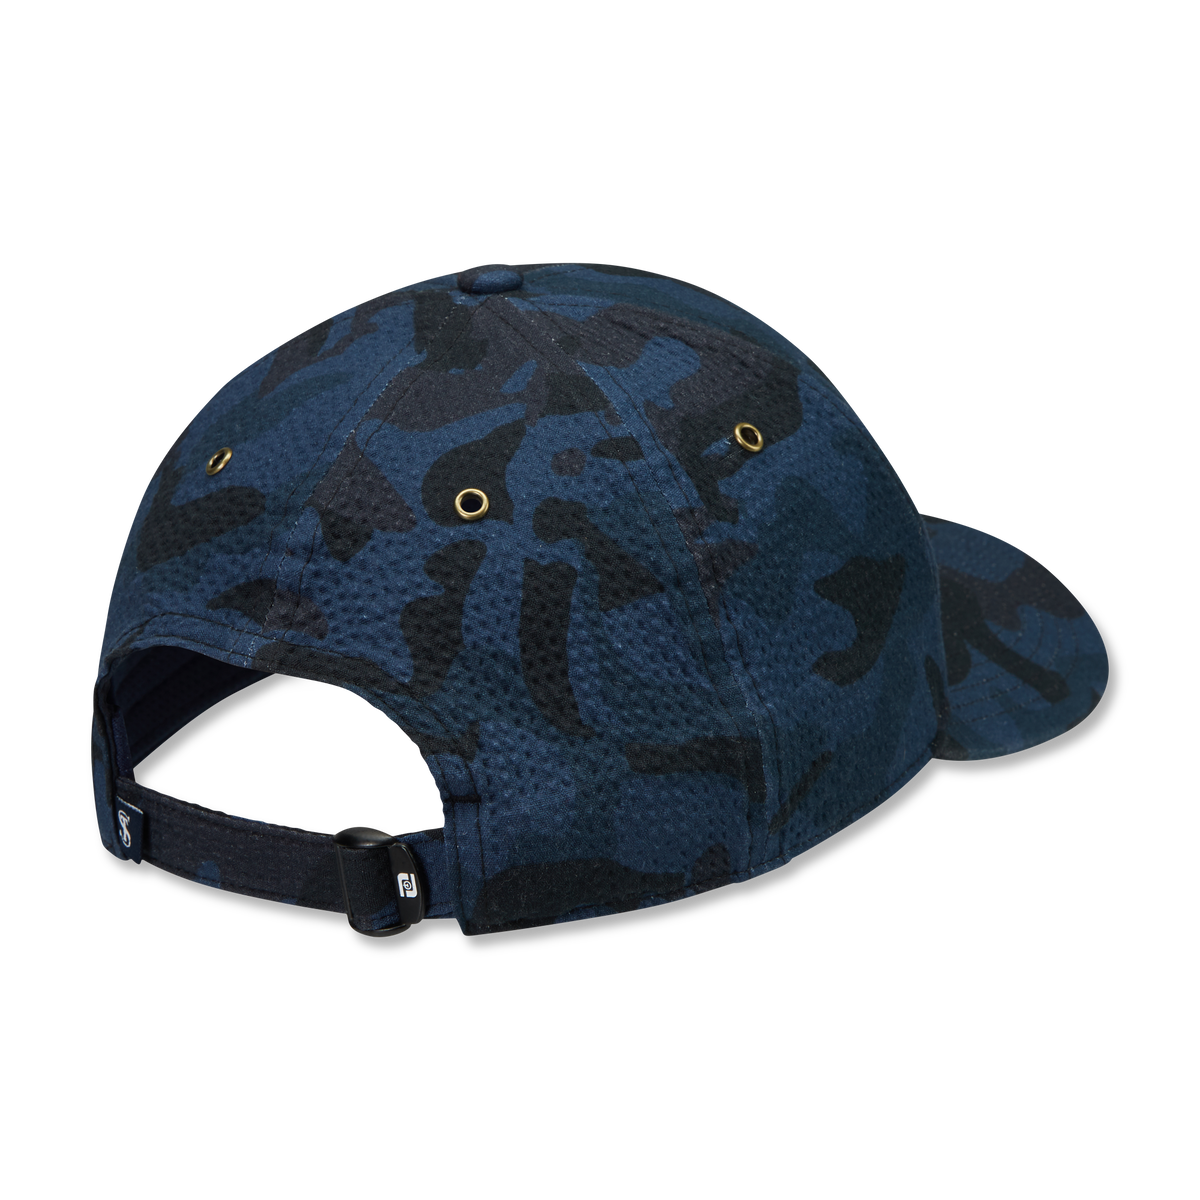 Adjustable Seersucker Golf Cap